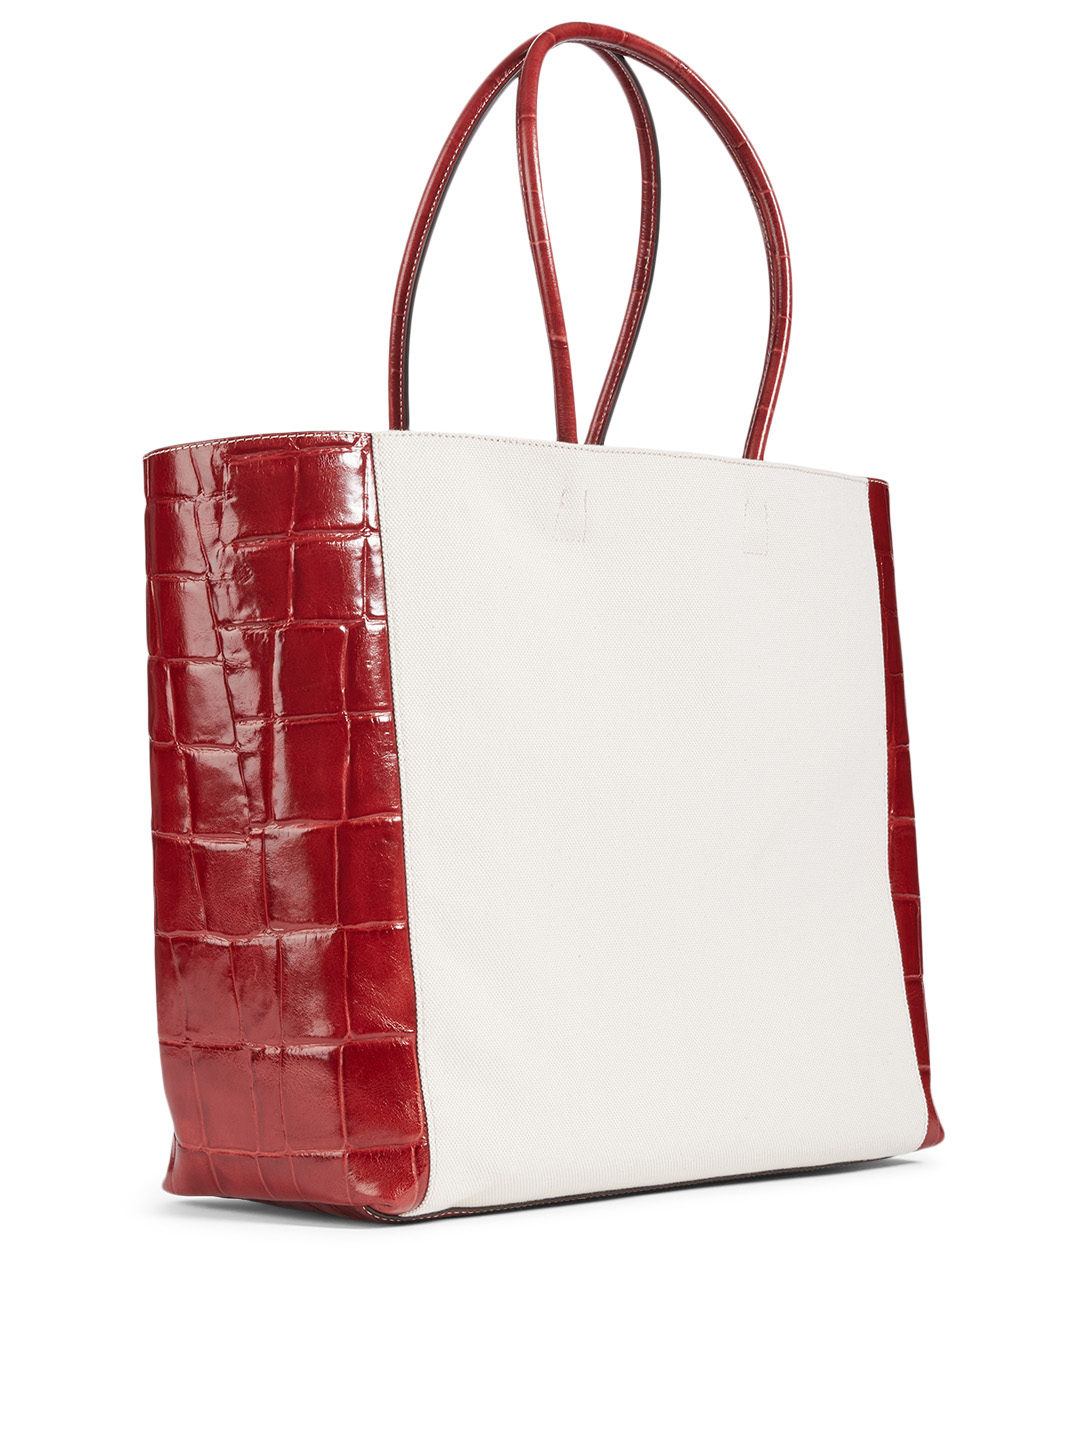 STAUD Linda Canvas And Croc-Embossed Leather Tote Bag Women's Neutral